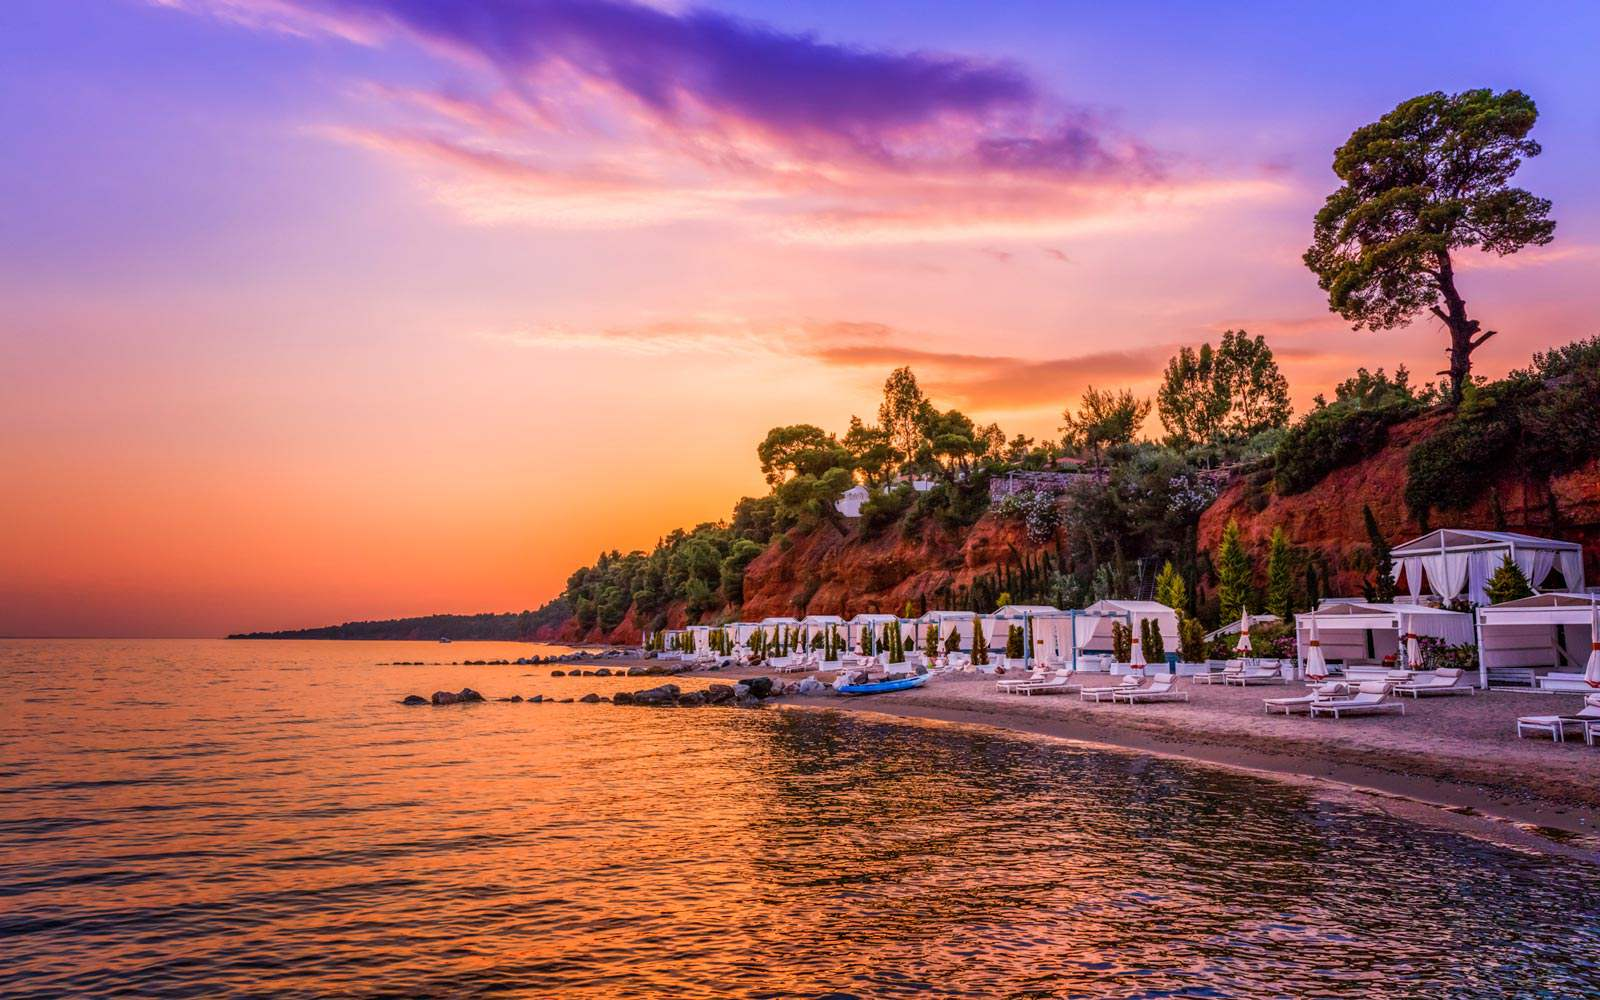 Danai Beach Resort & Villas, Halkidiki: room / property / locale photo. Image 16